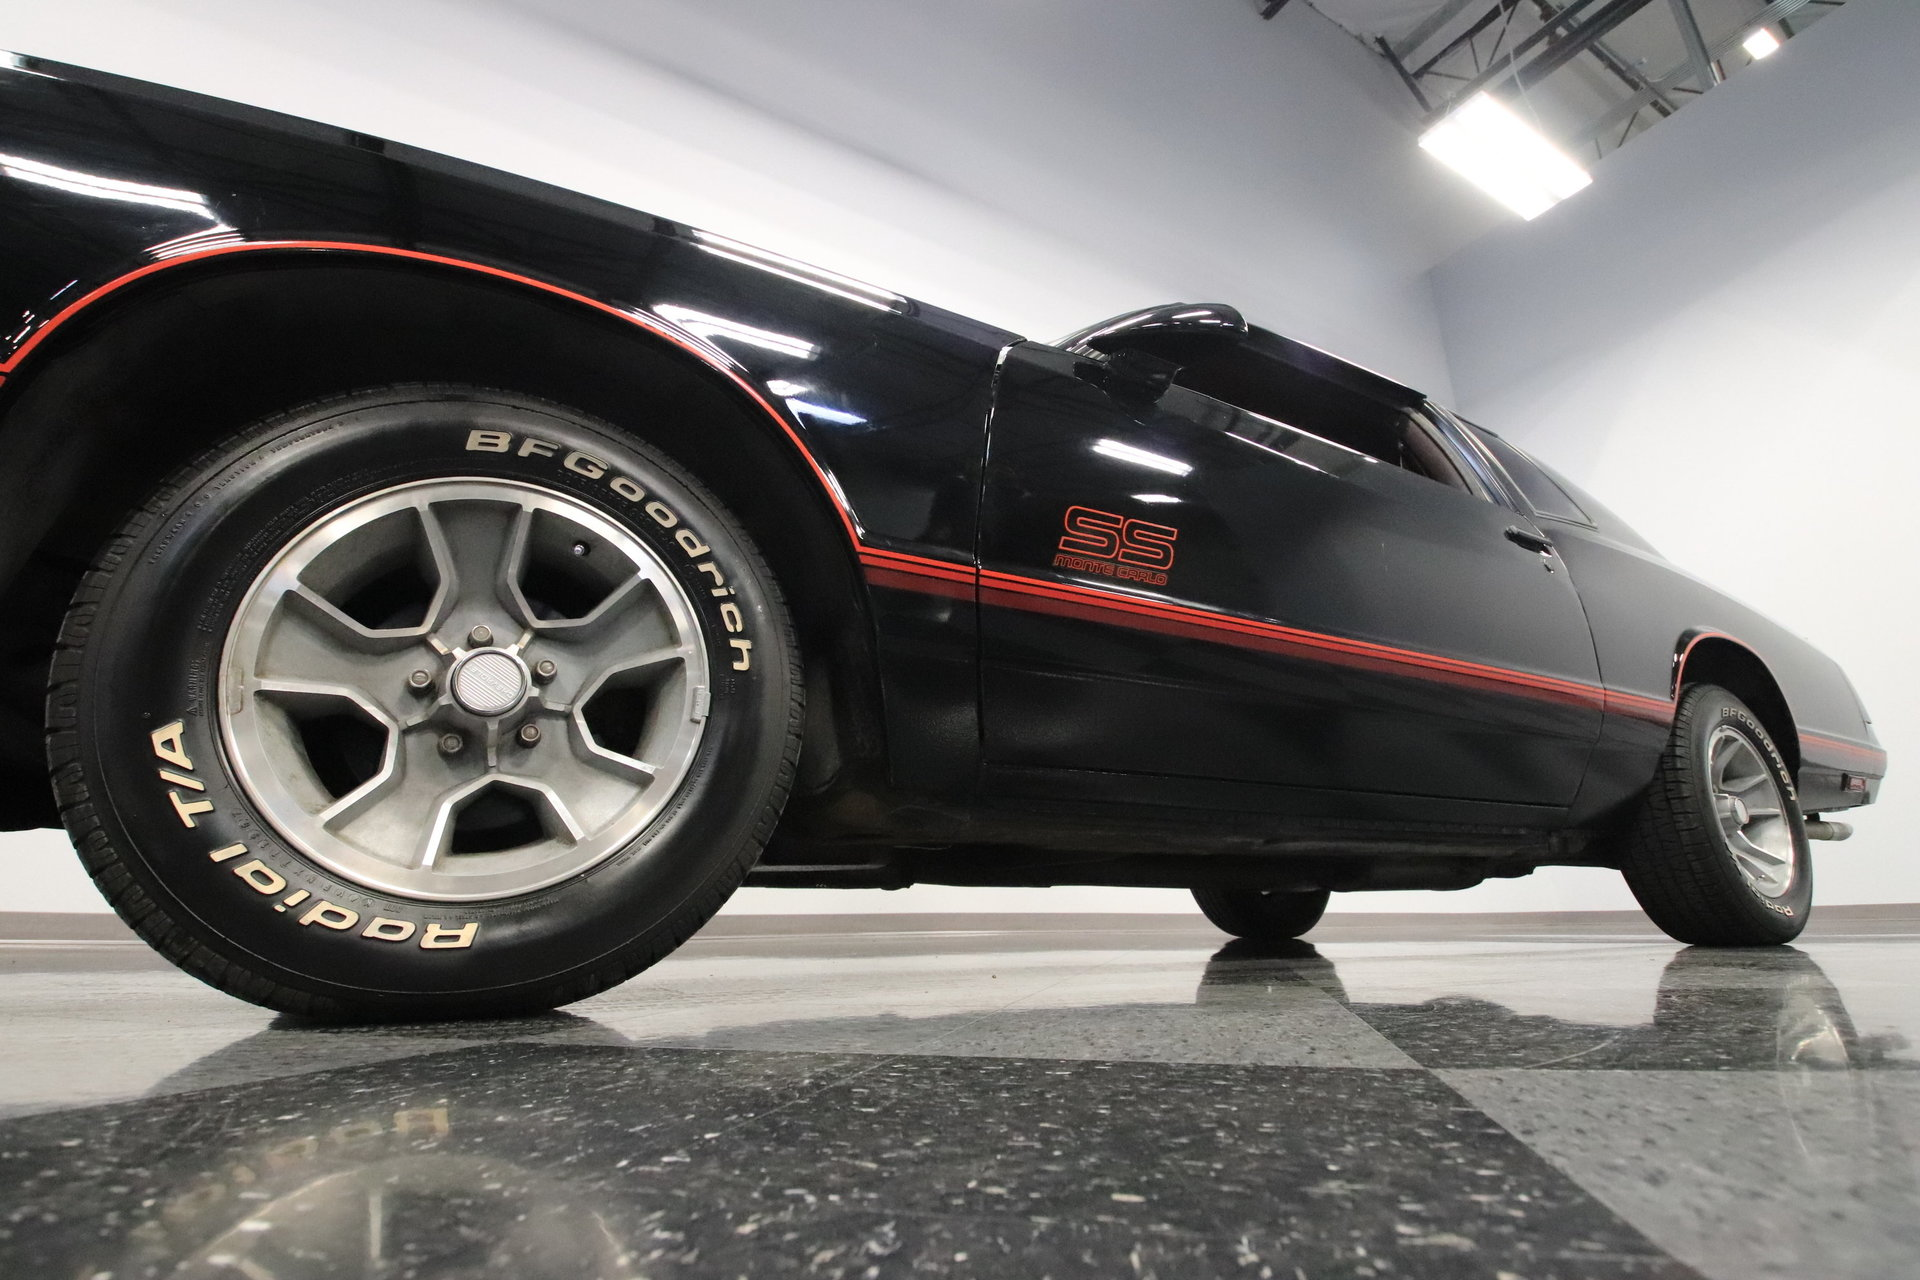 774882c4b33b45_hd_1988-chevrolet-monte-carlo-ss Take A Look About 1980 Monte Carlo for Sale with Mesmerizing Photos Cars Review